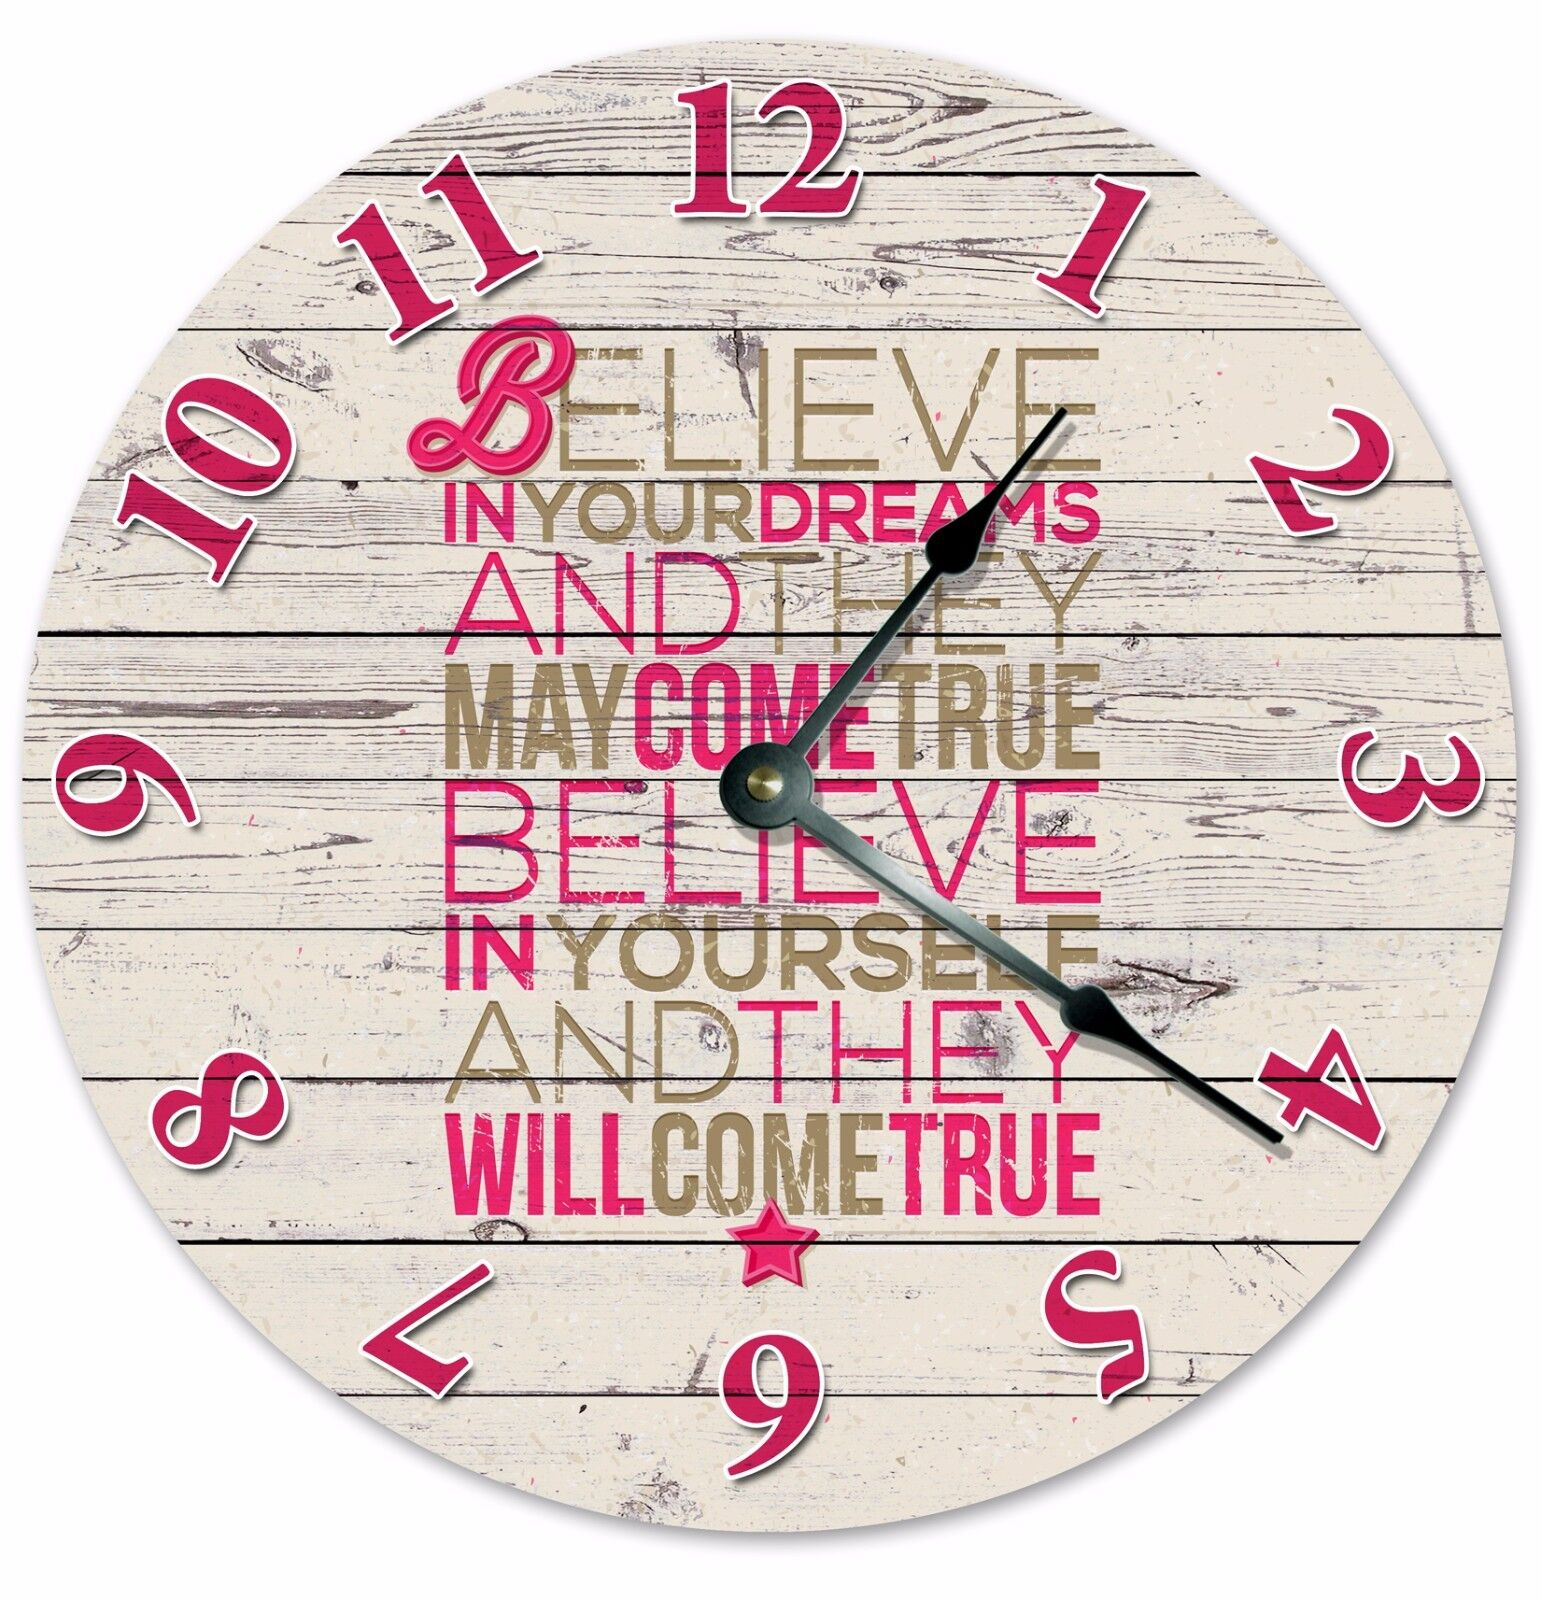 """BELIEVE IN YOURSELF And Dreams Clock - Large 10.5"""" Wall Clock - 2045"""